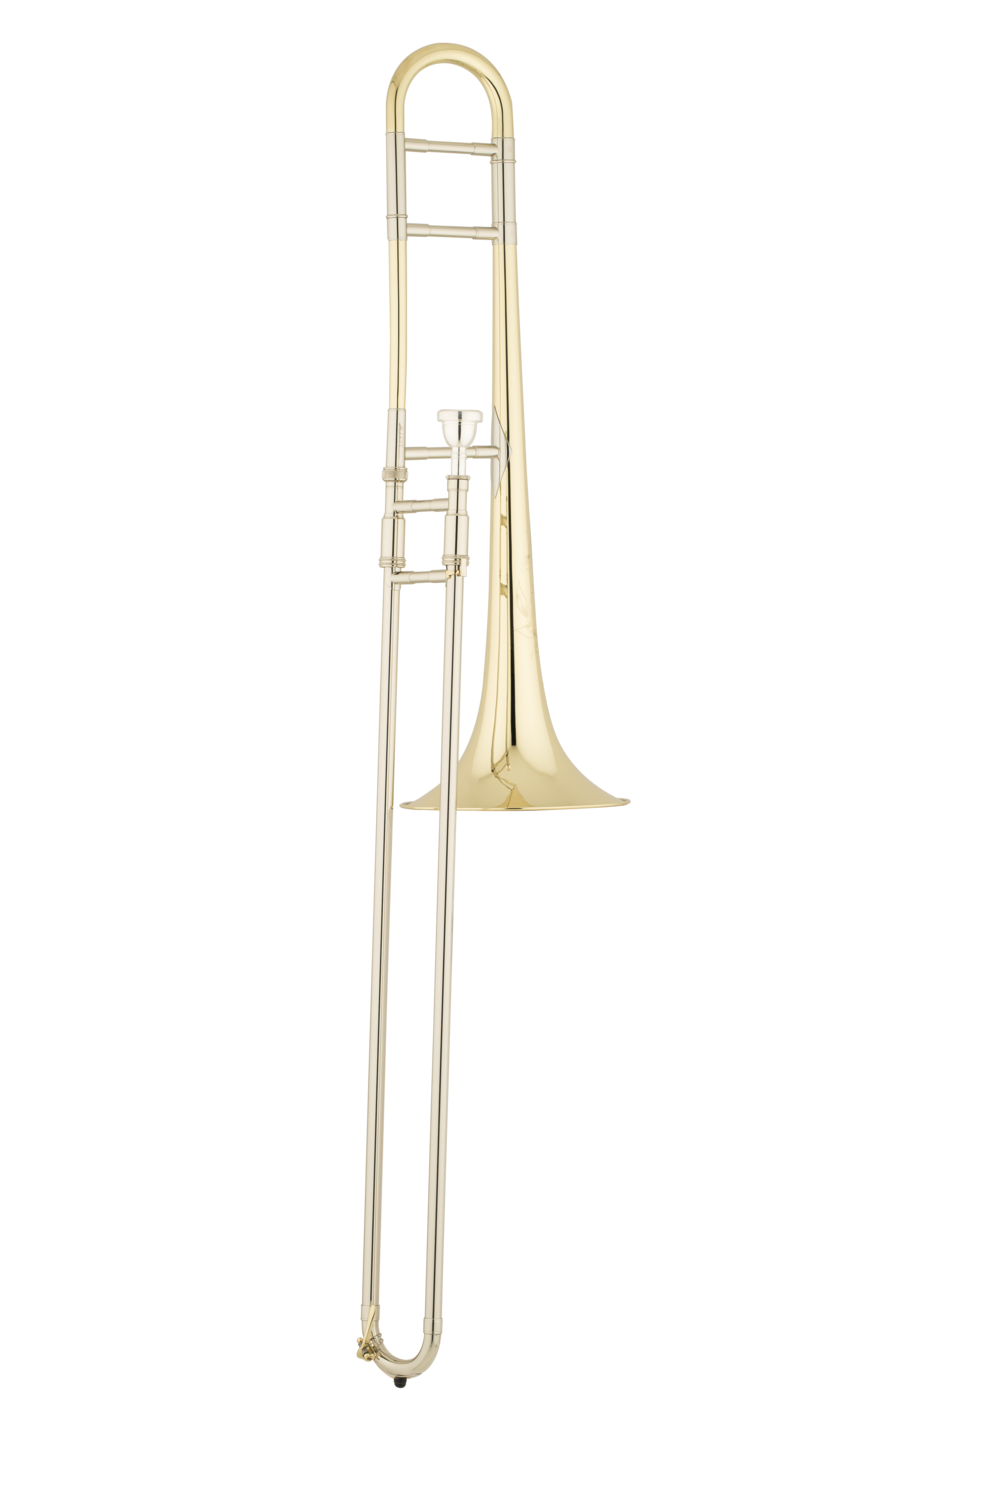 Shires_Trombone_TBQ33_Front_0718.png